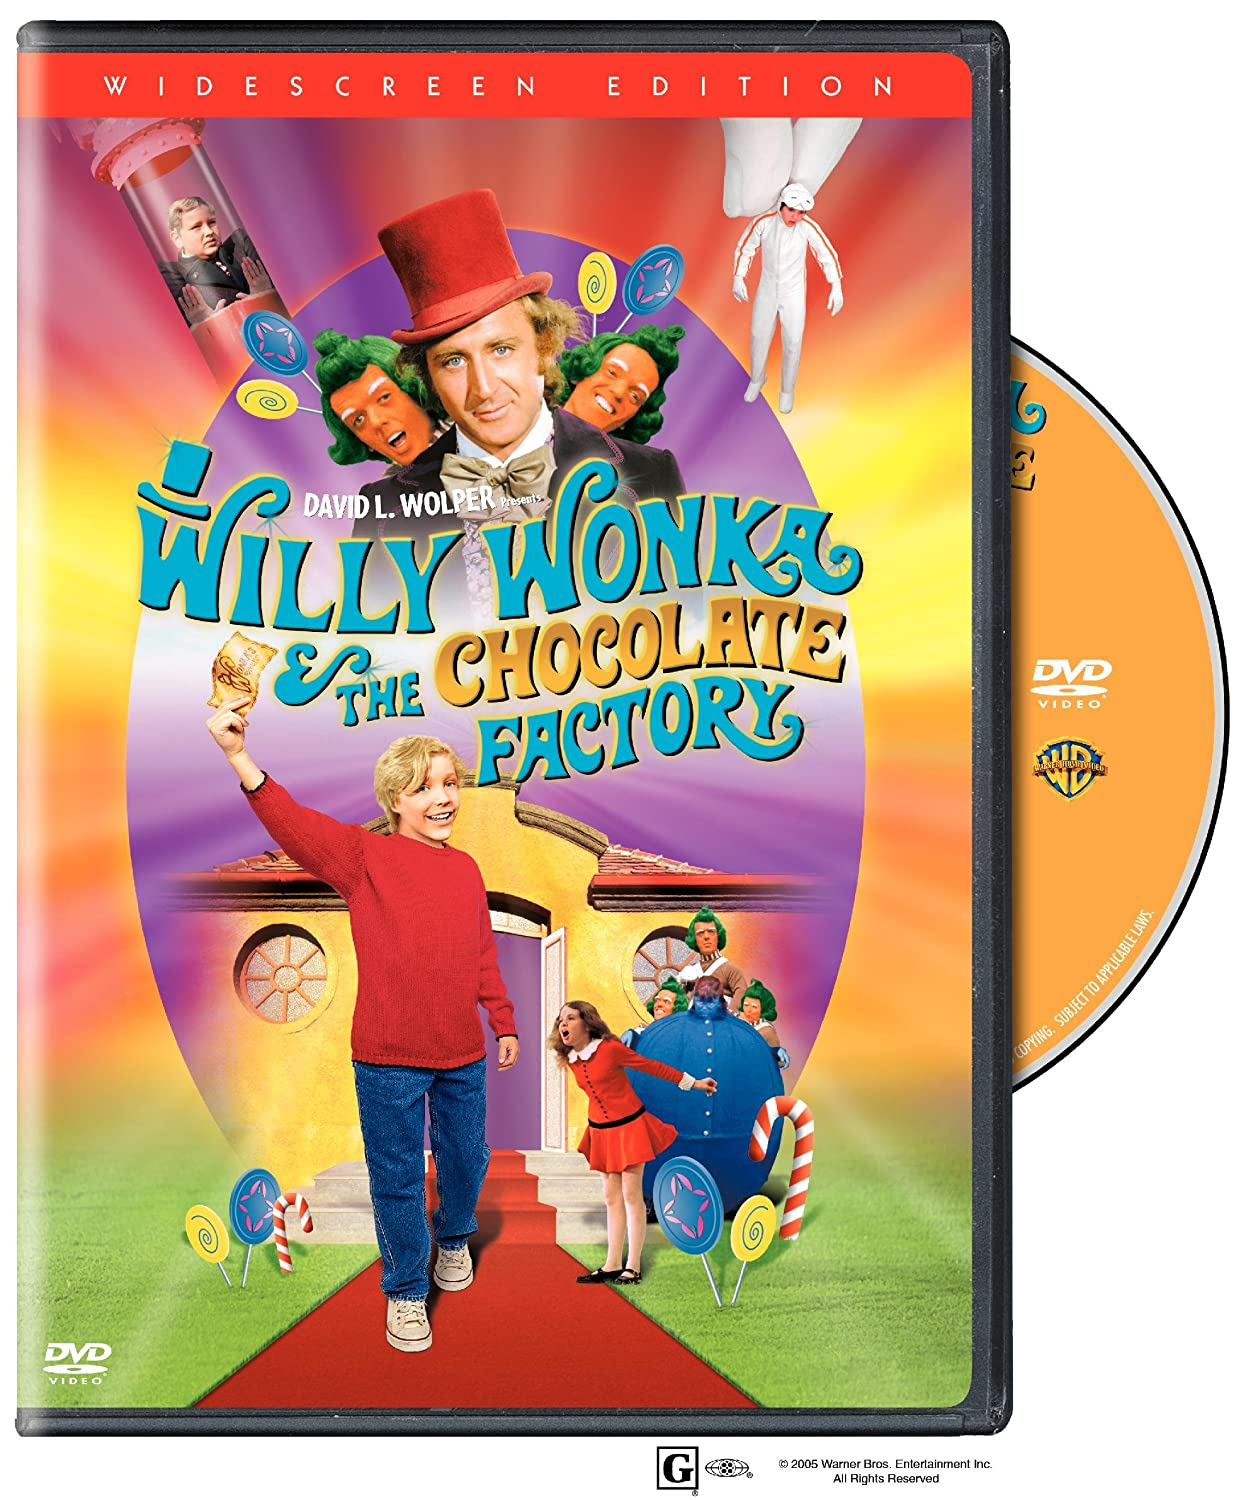 Amazon.com: Willy Wonka & the Chocolate Factory (Widescreen ...